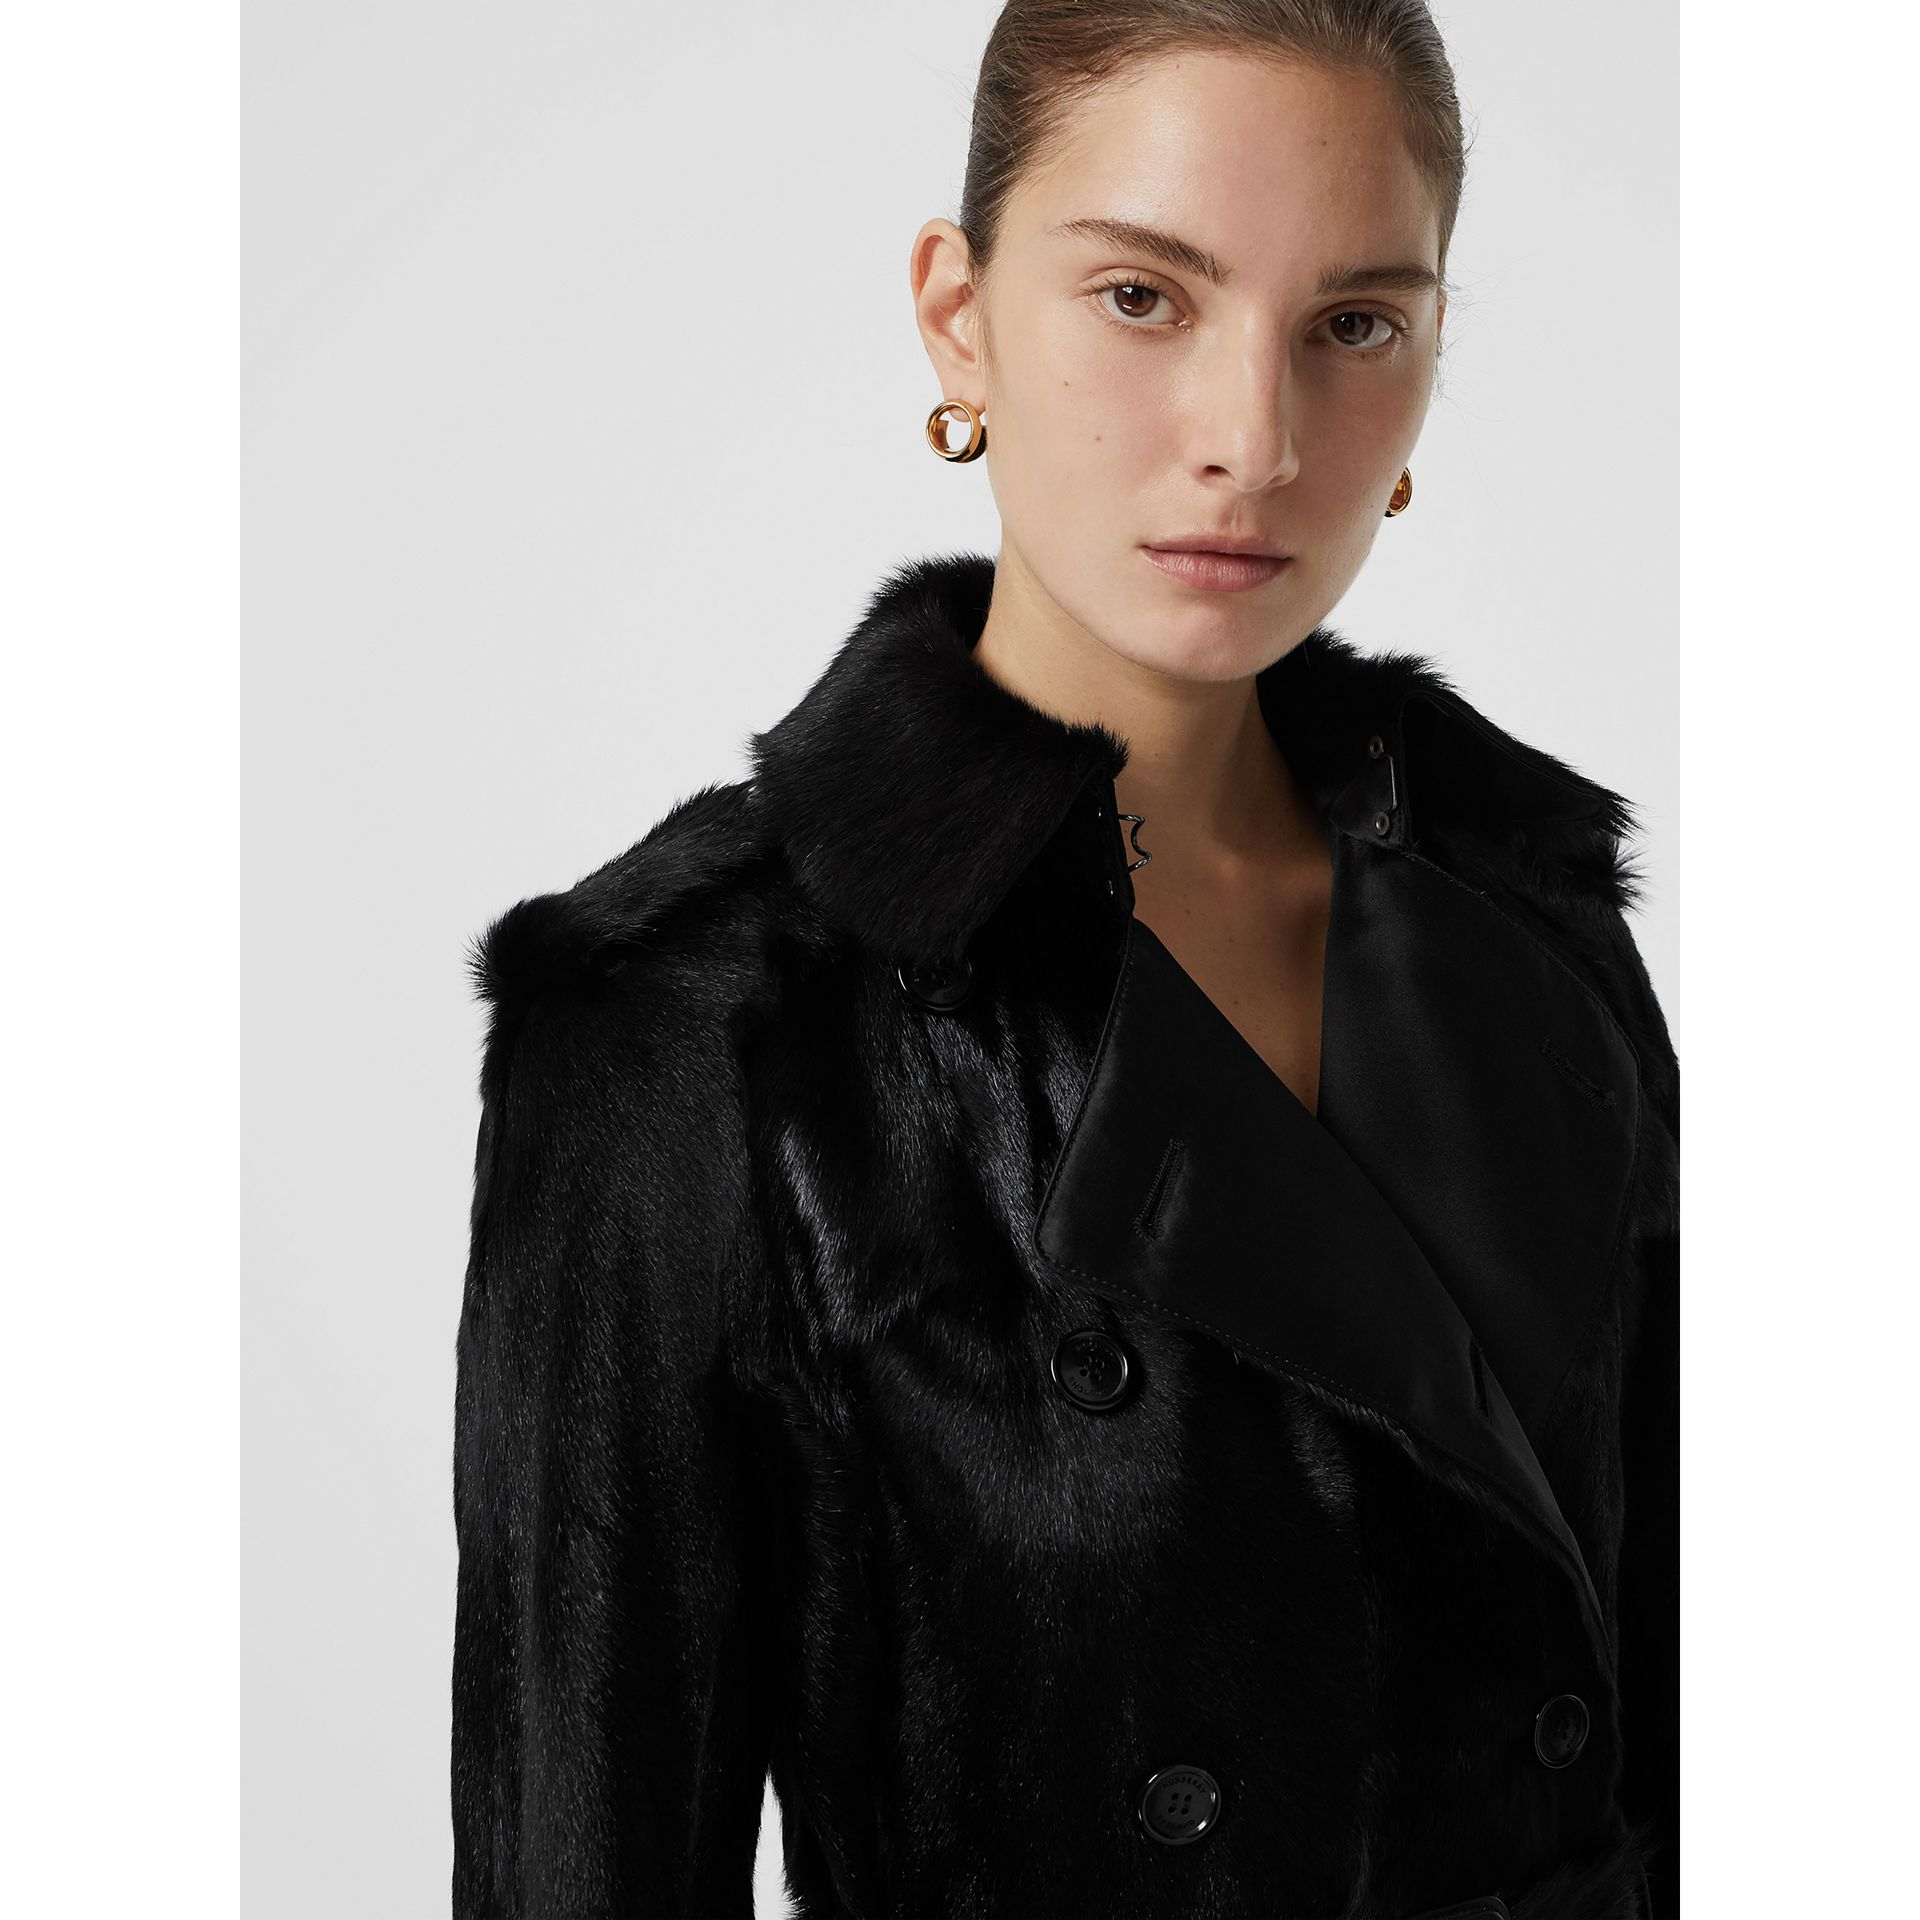 Goat Trench Coat in Black - Women | Burberry Australia - gallery image 1